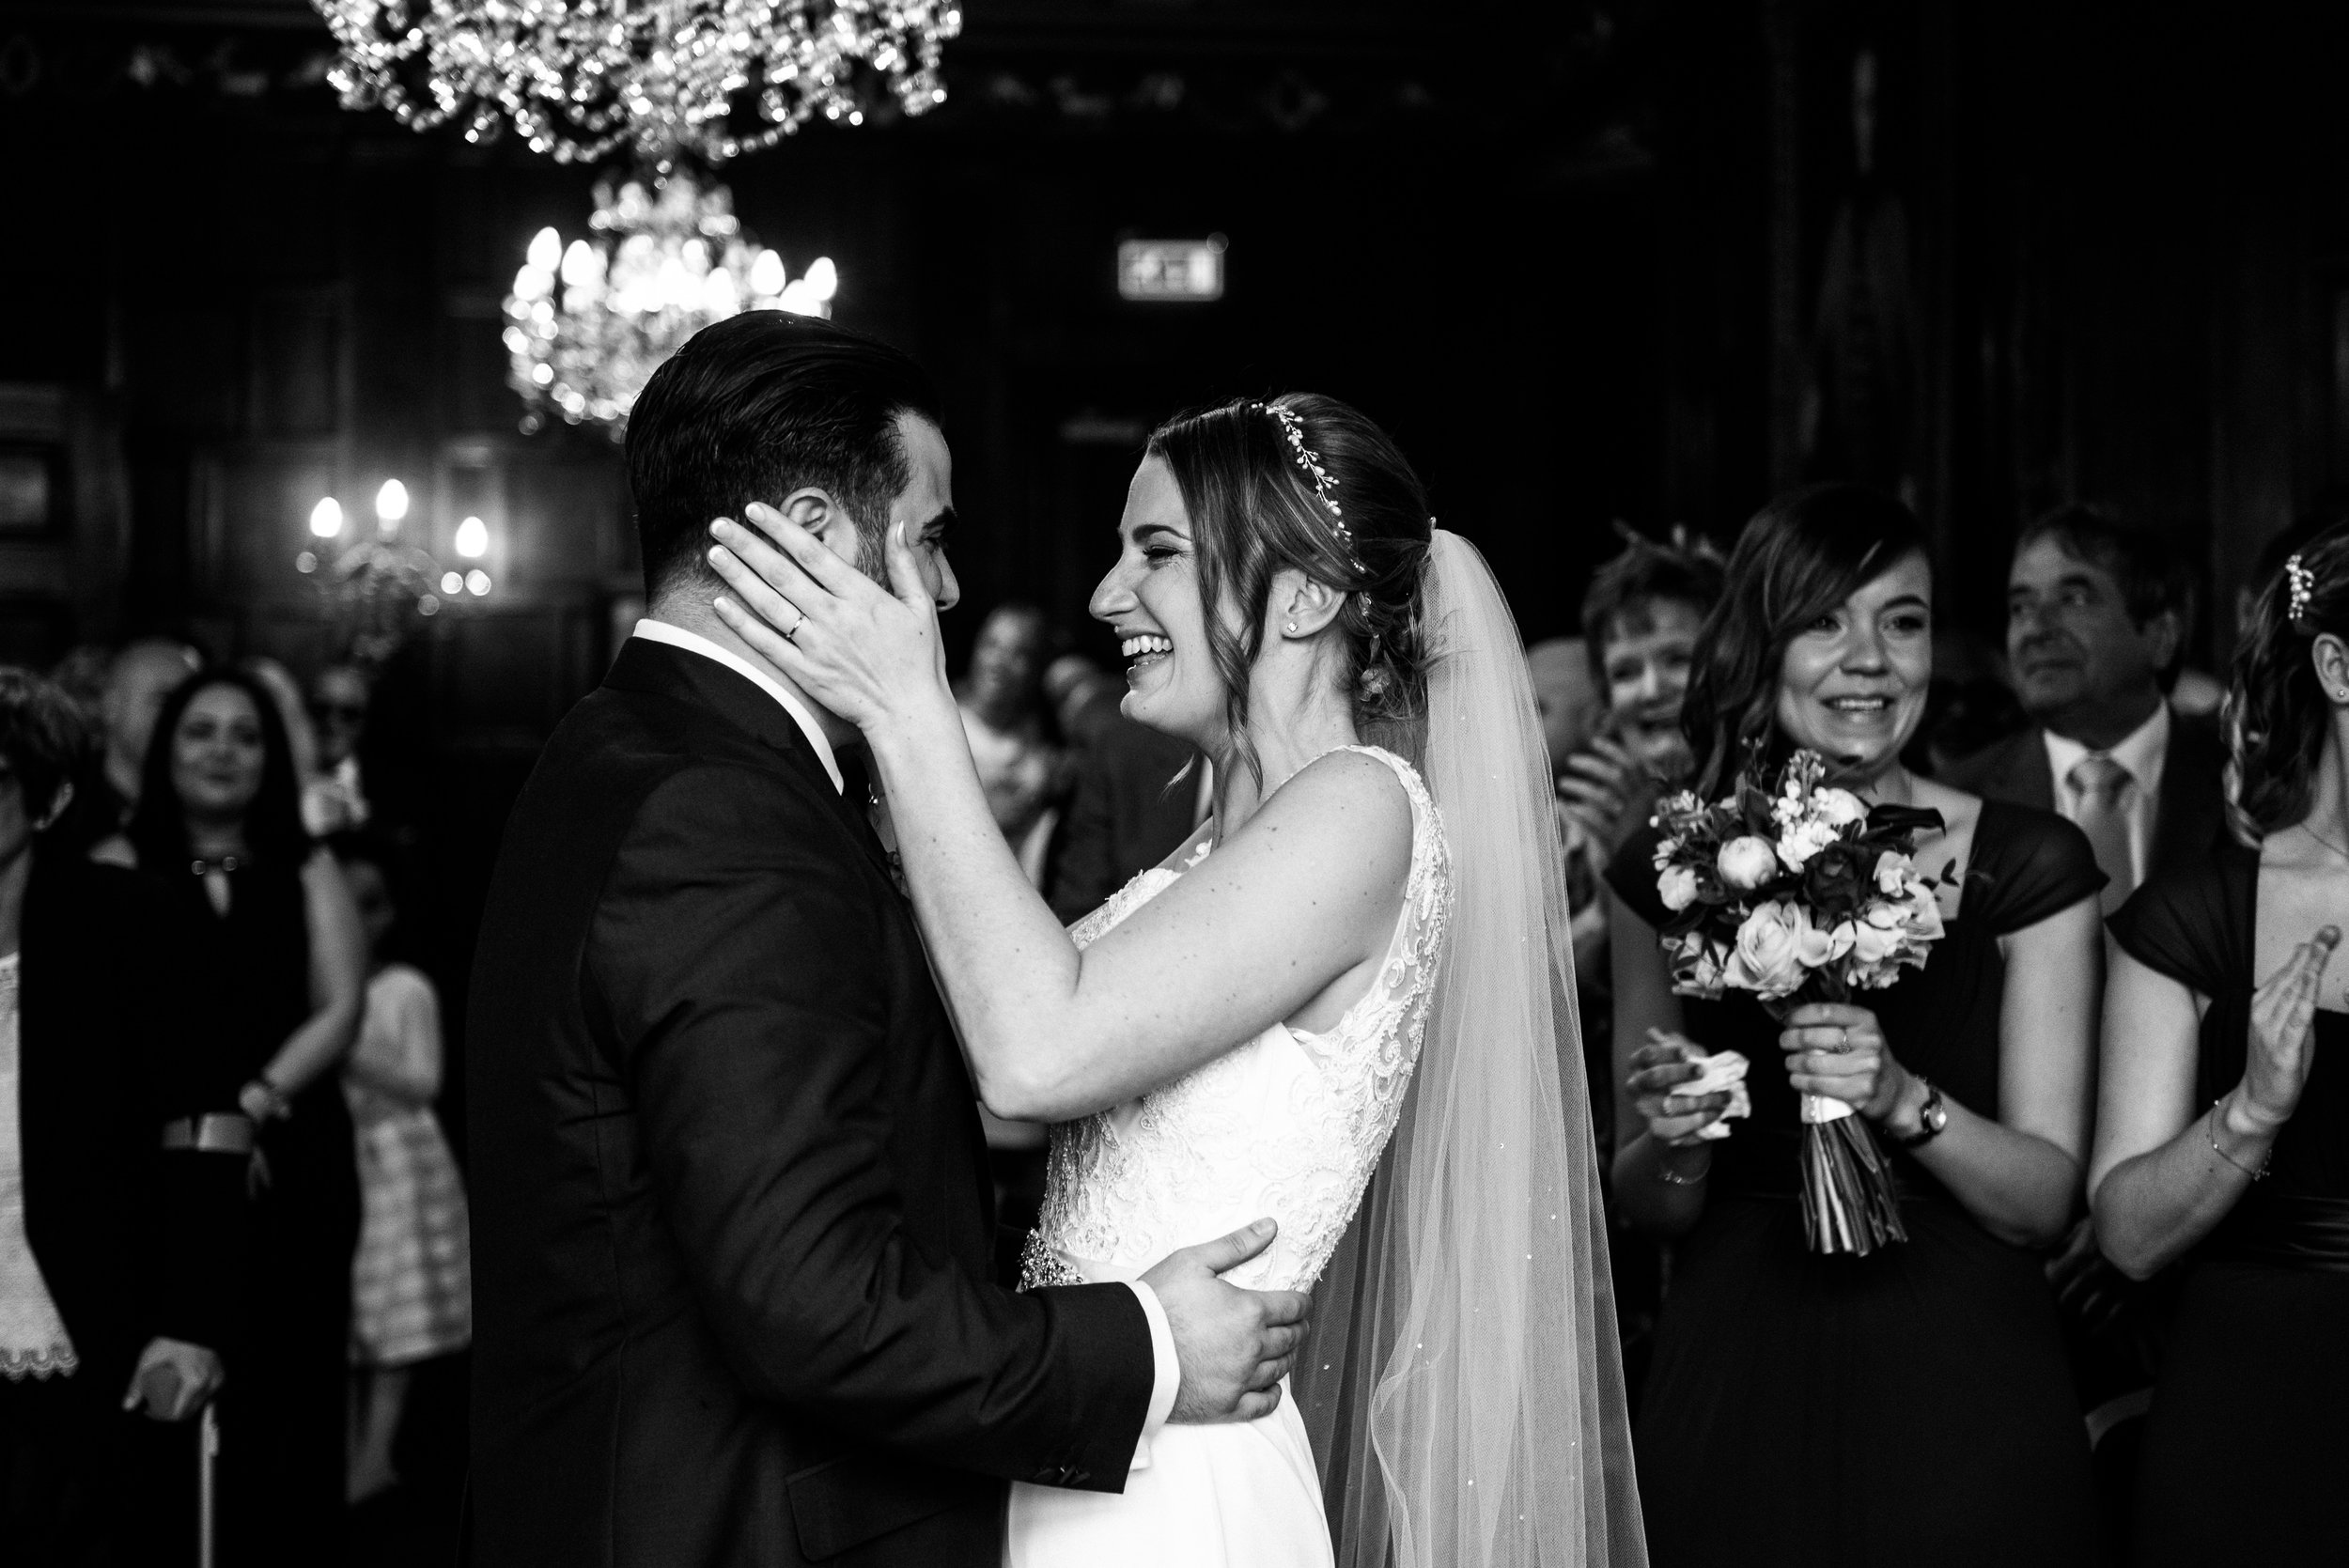 Birmingham Documentary Wedding Photography at New Hall, Sutton Coldfield Turkish Red Candid Reportage - Jenny Harper-33.jpg